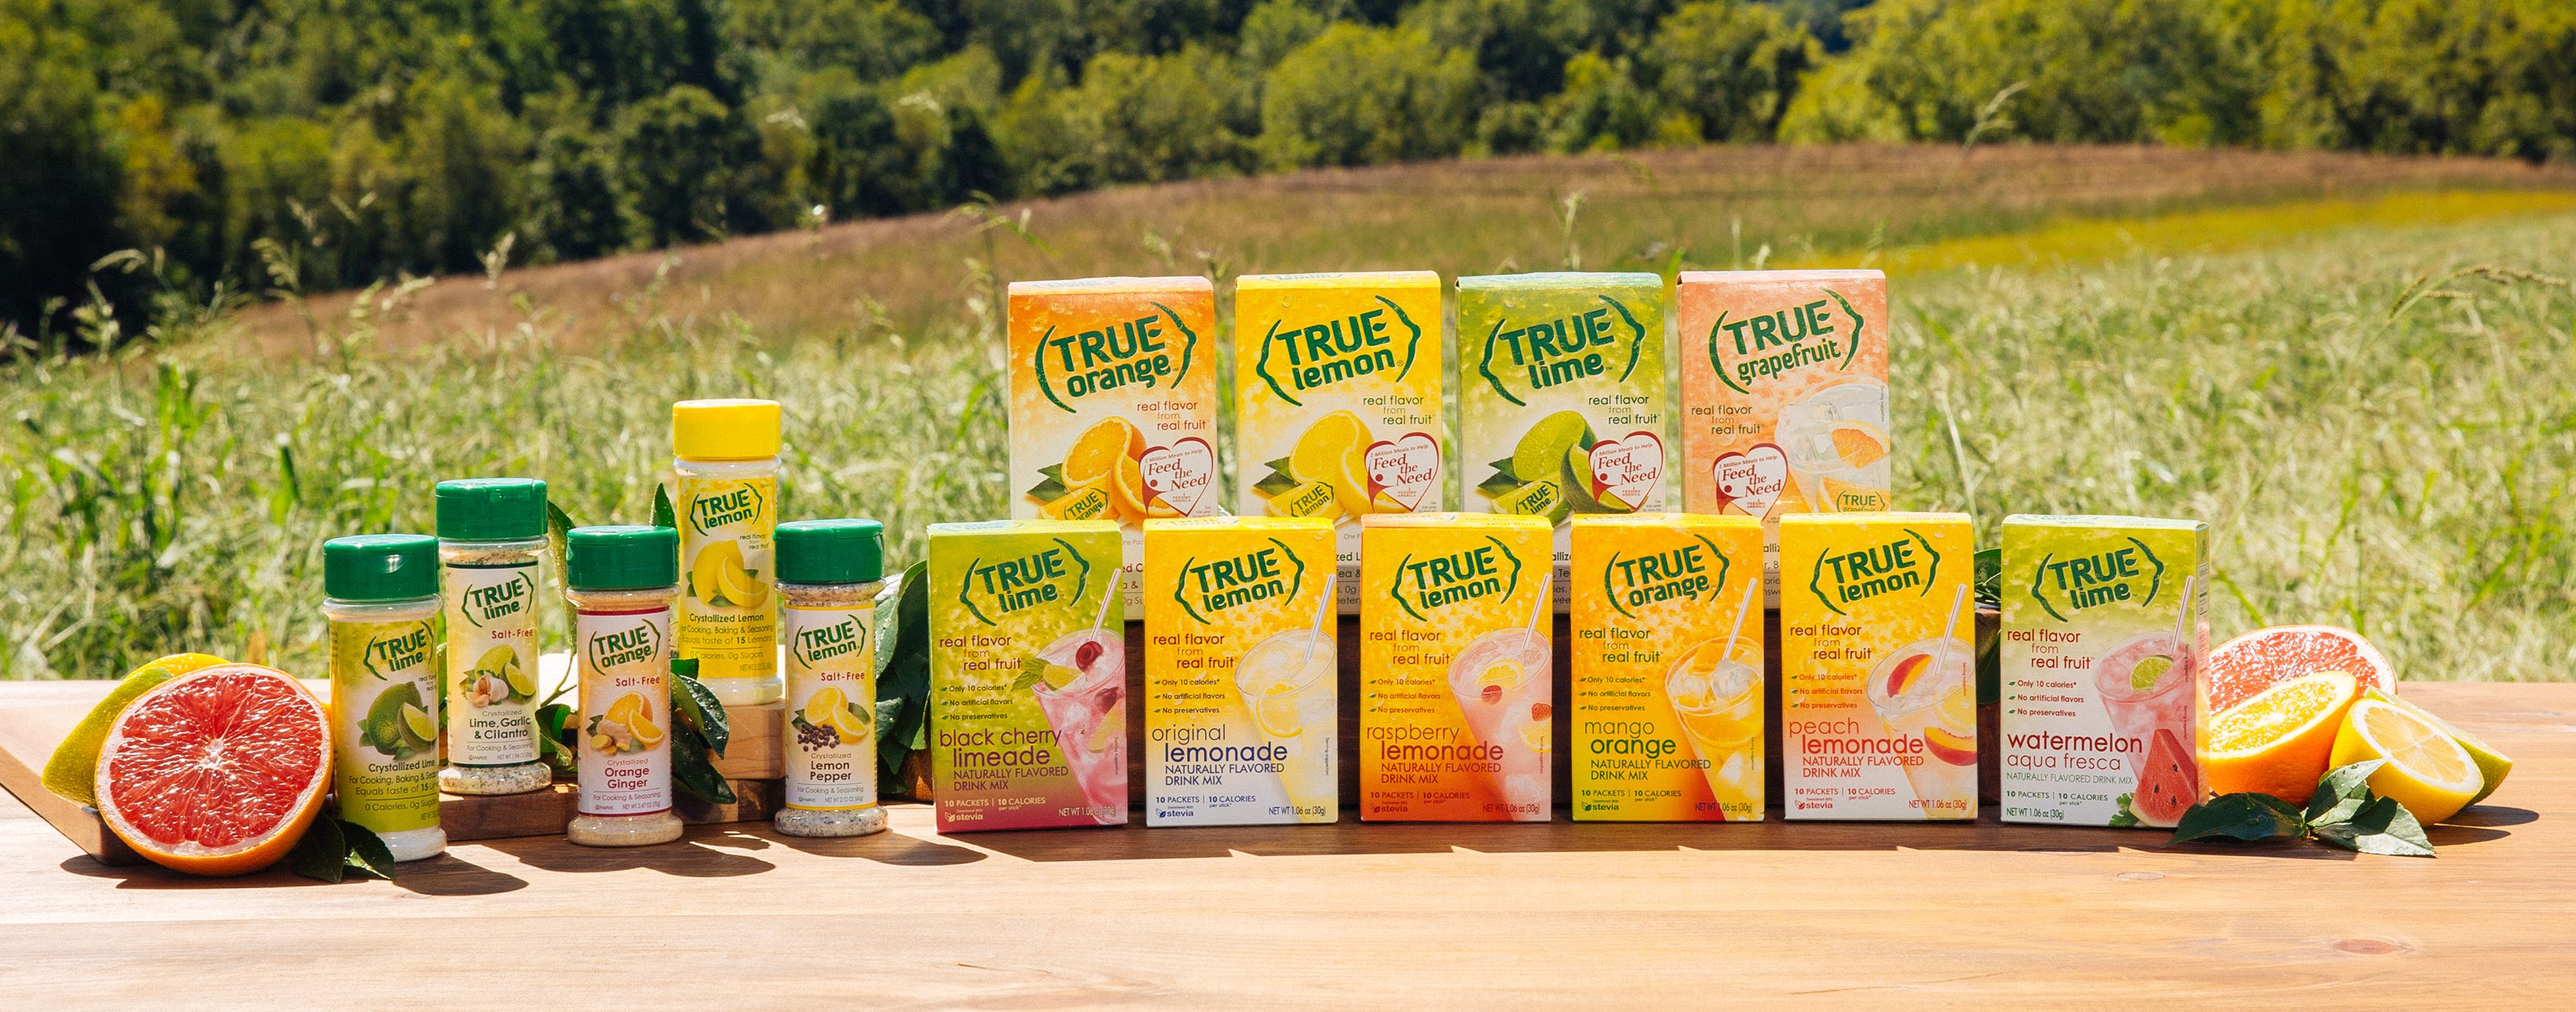 "True Citrus Launches 2017 ""New Year, True You"" Challenge"